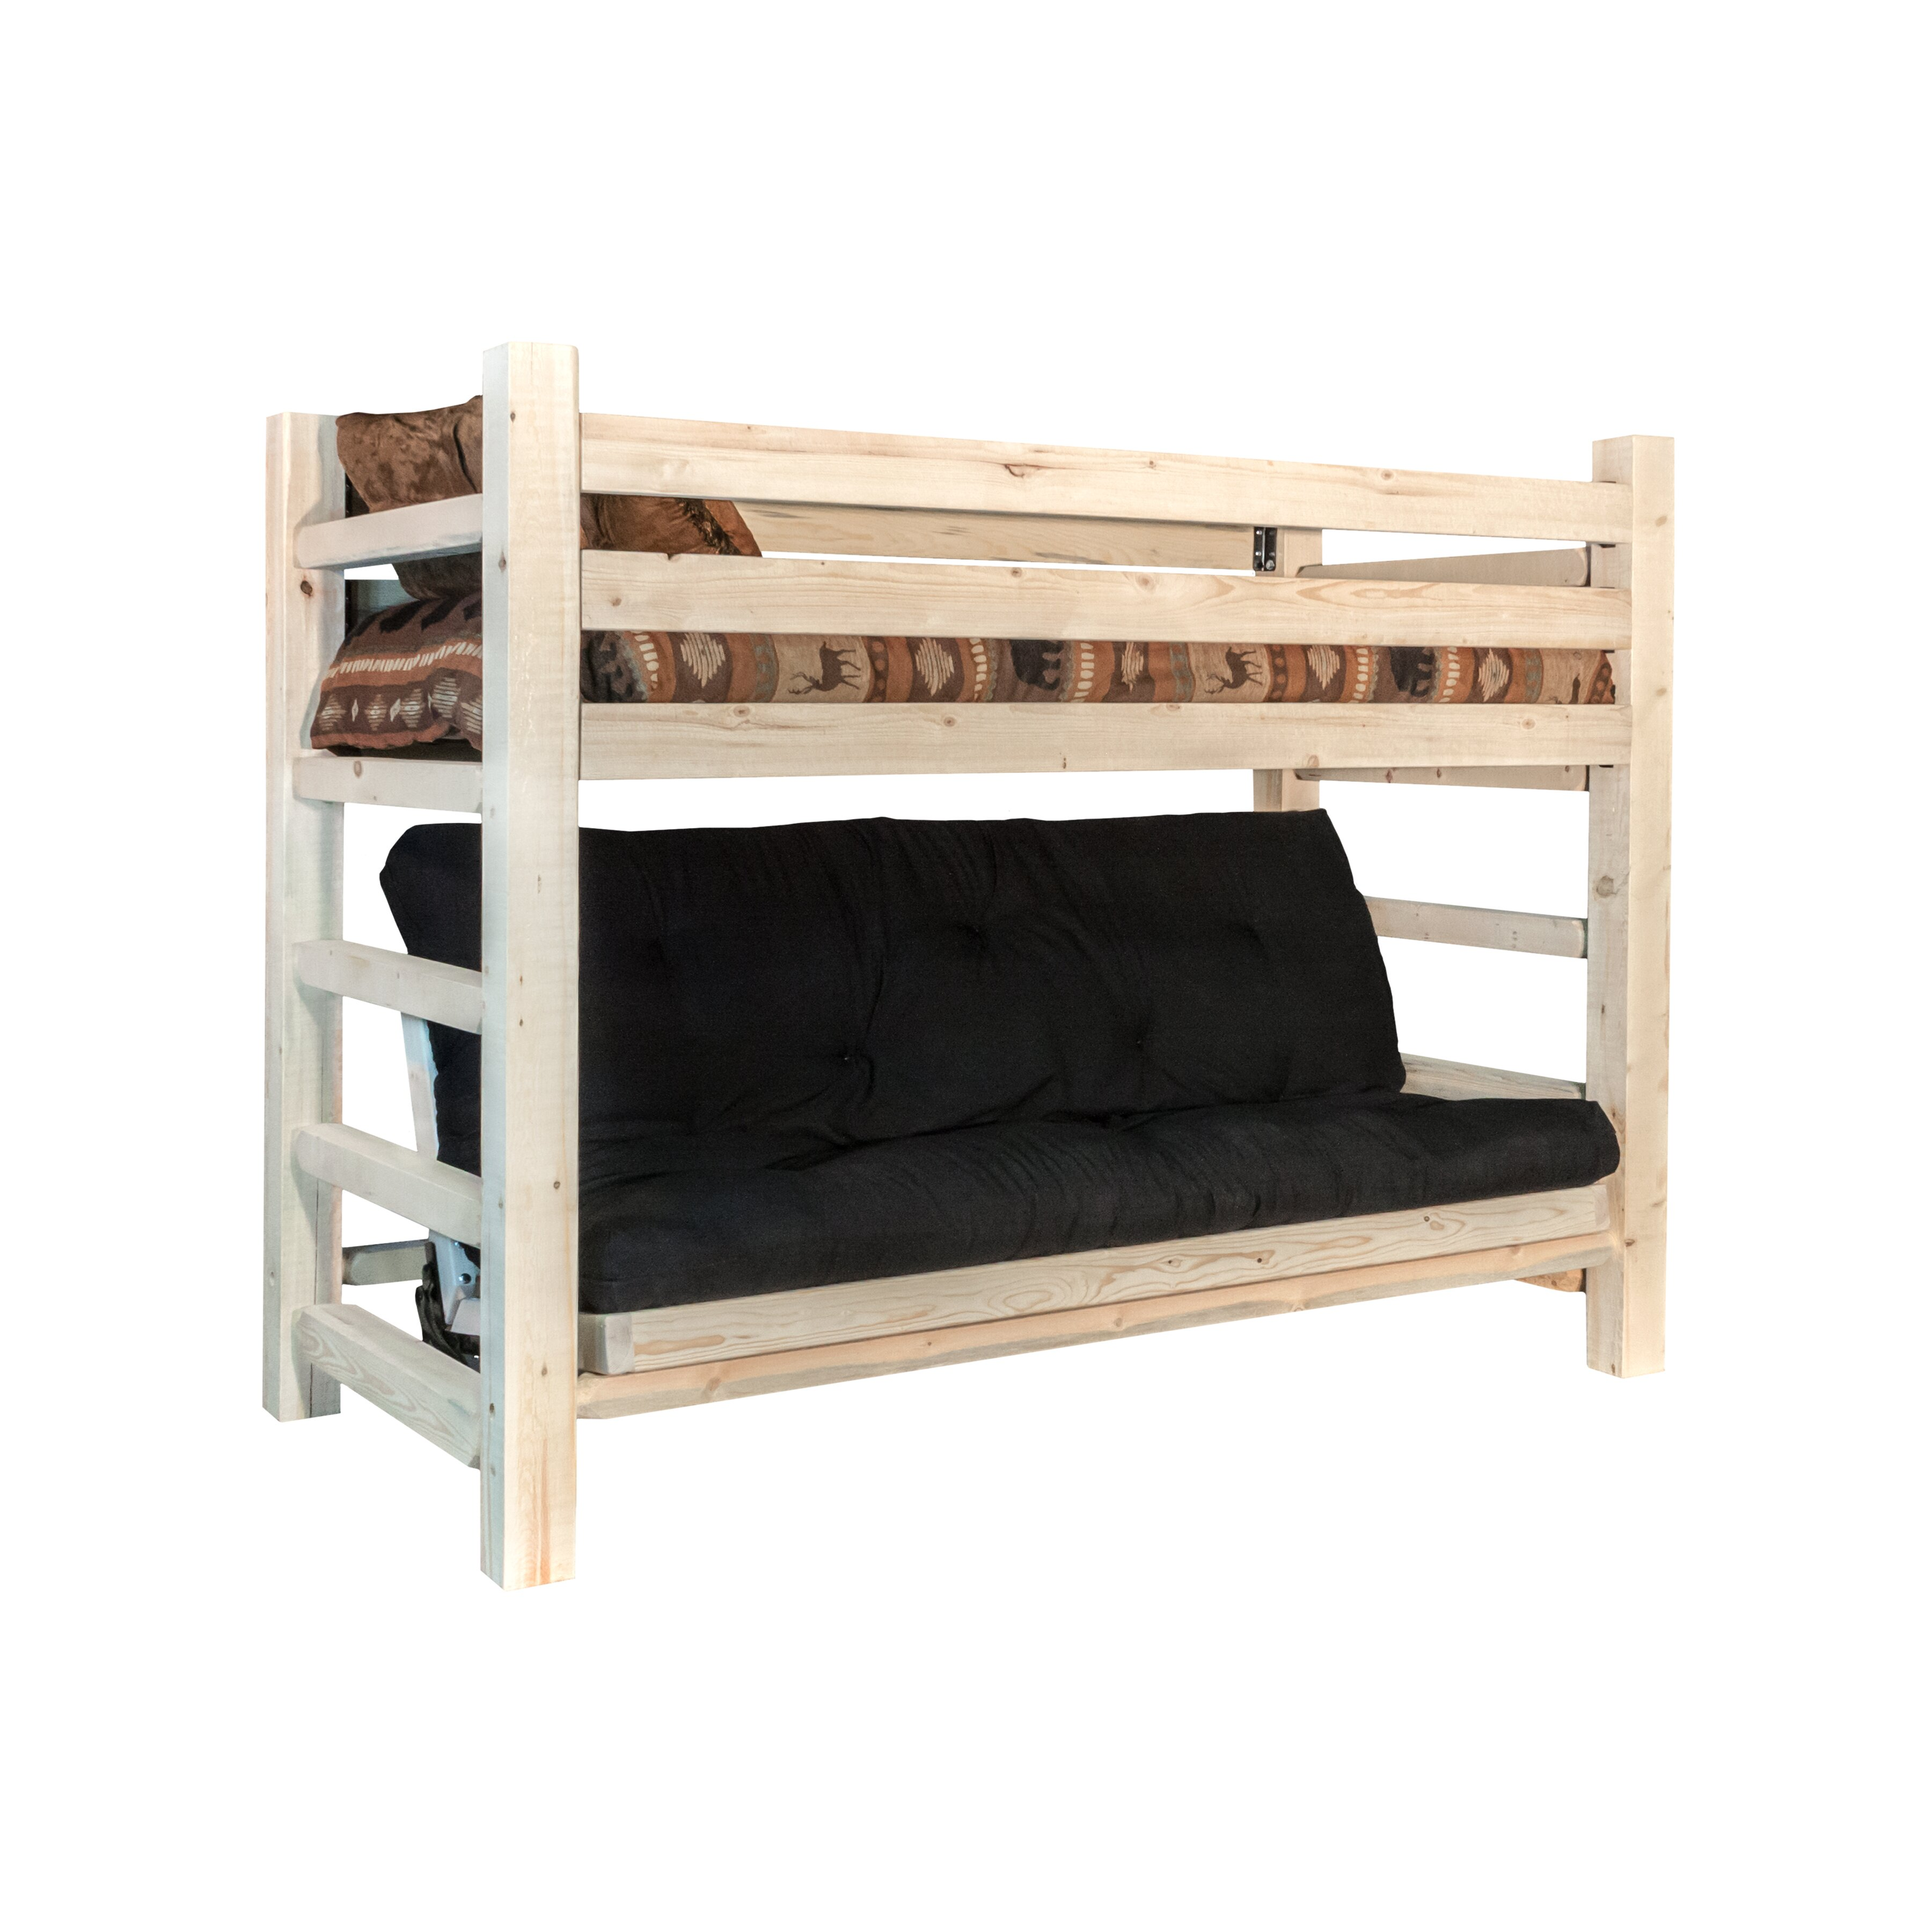 Montana woodworks homestead twin futon bunk bed for Bunk bed frame with mattress